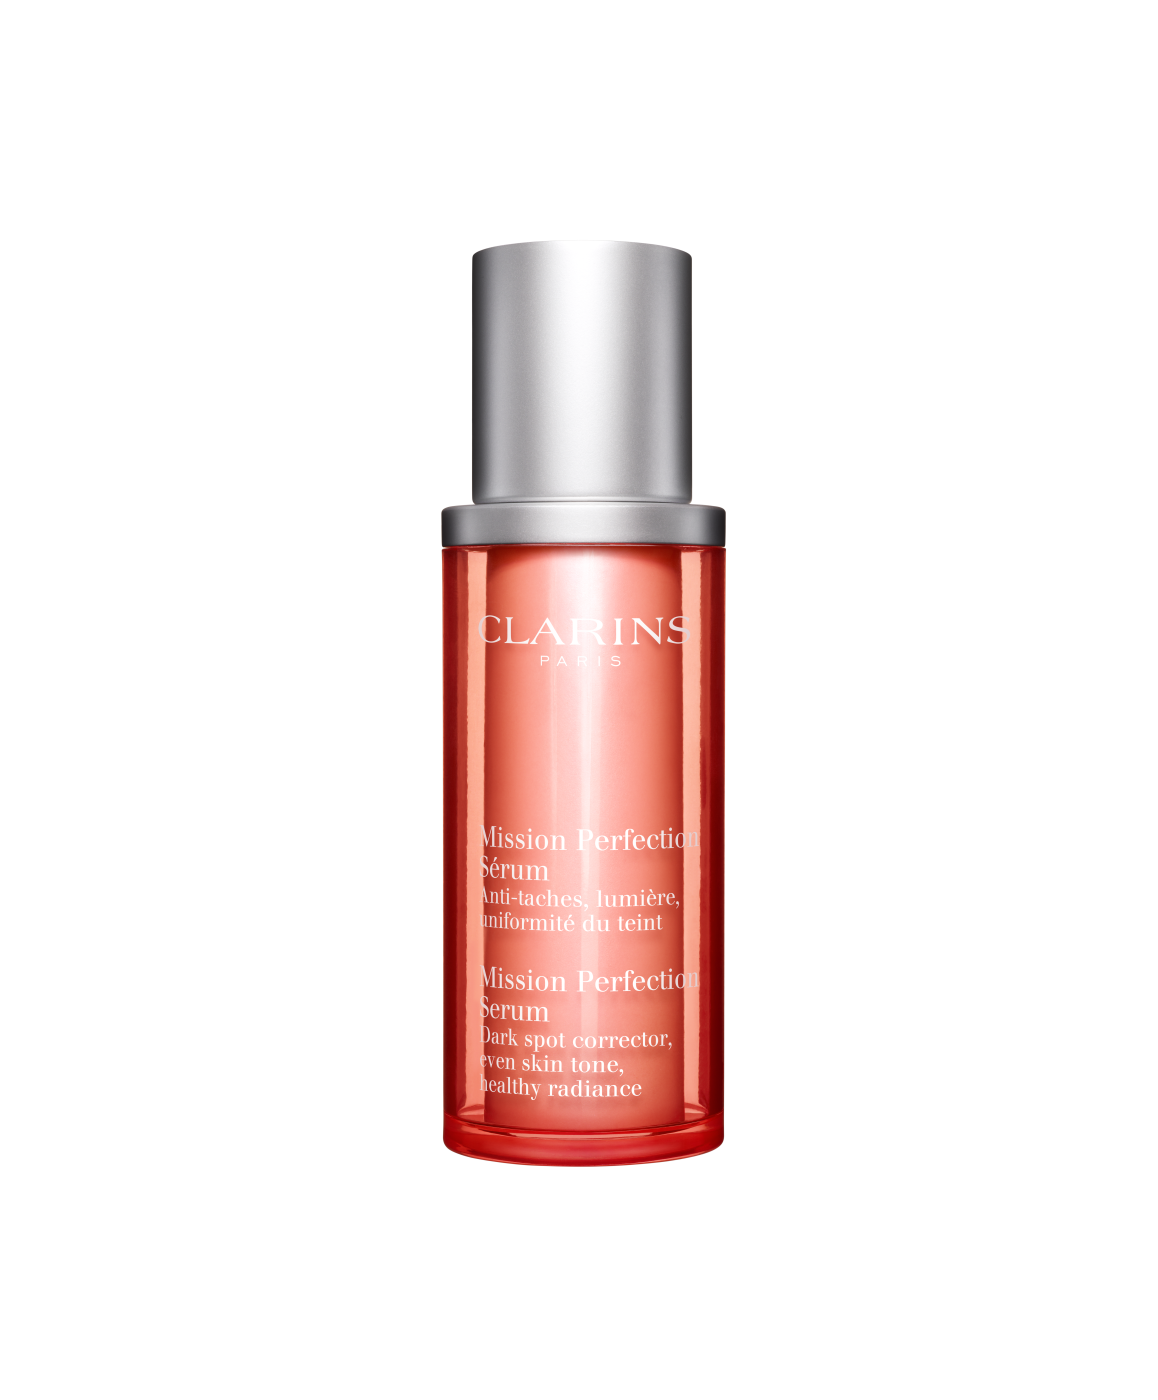 CLARINS MISSION PERFECTION SERUM 30 ML